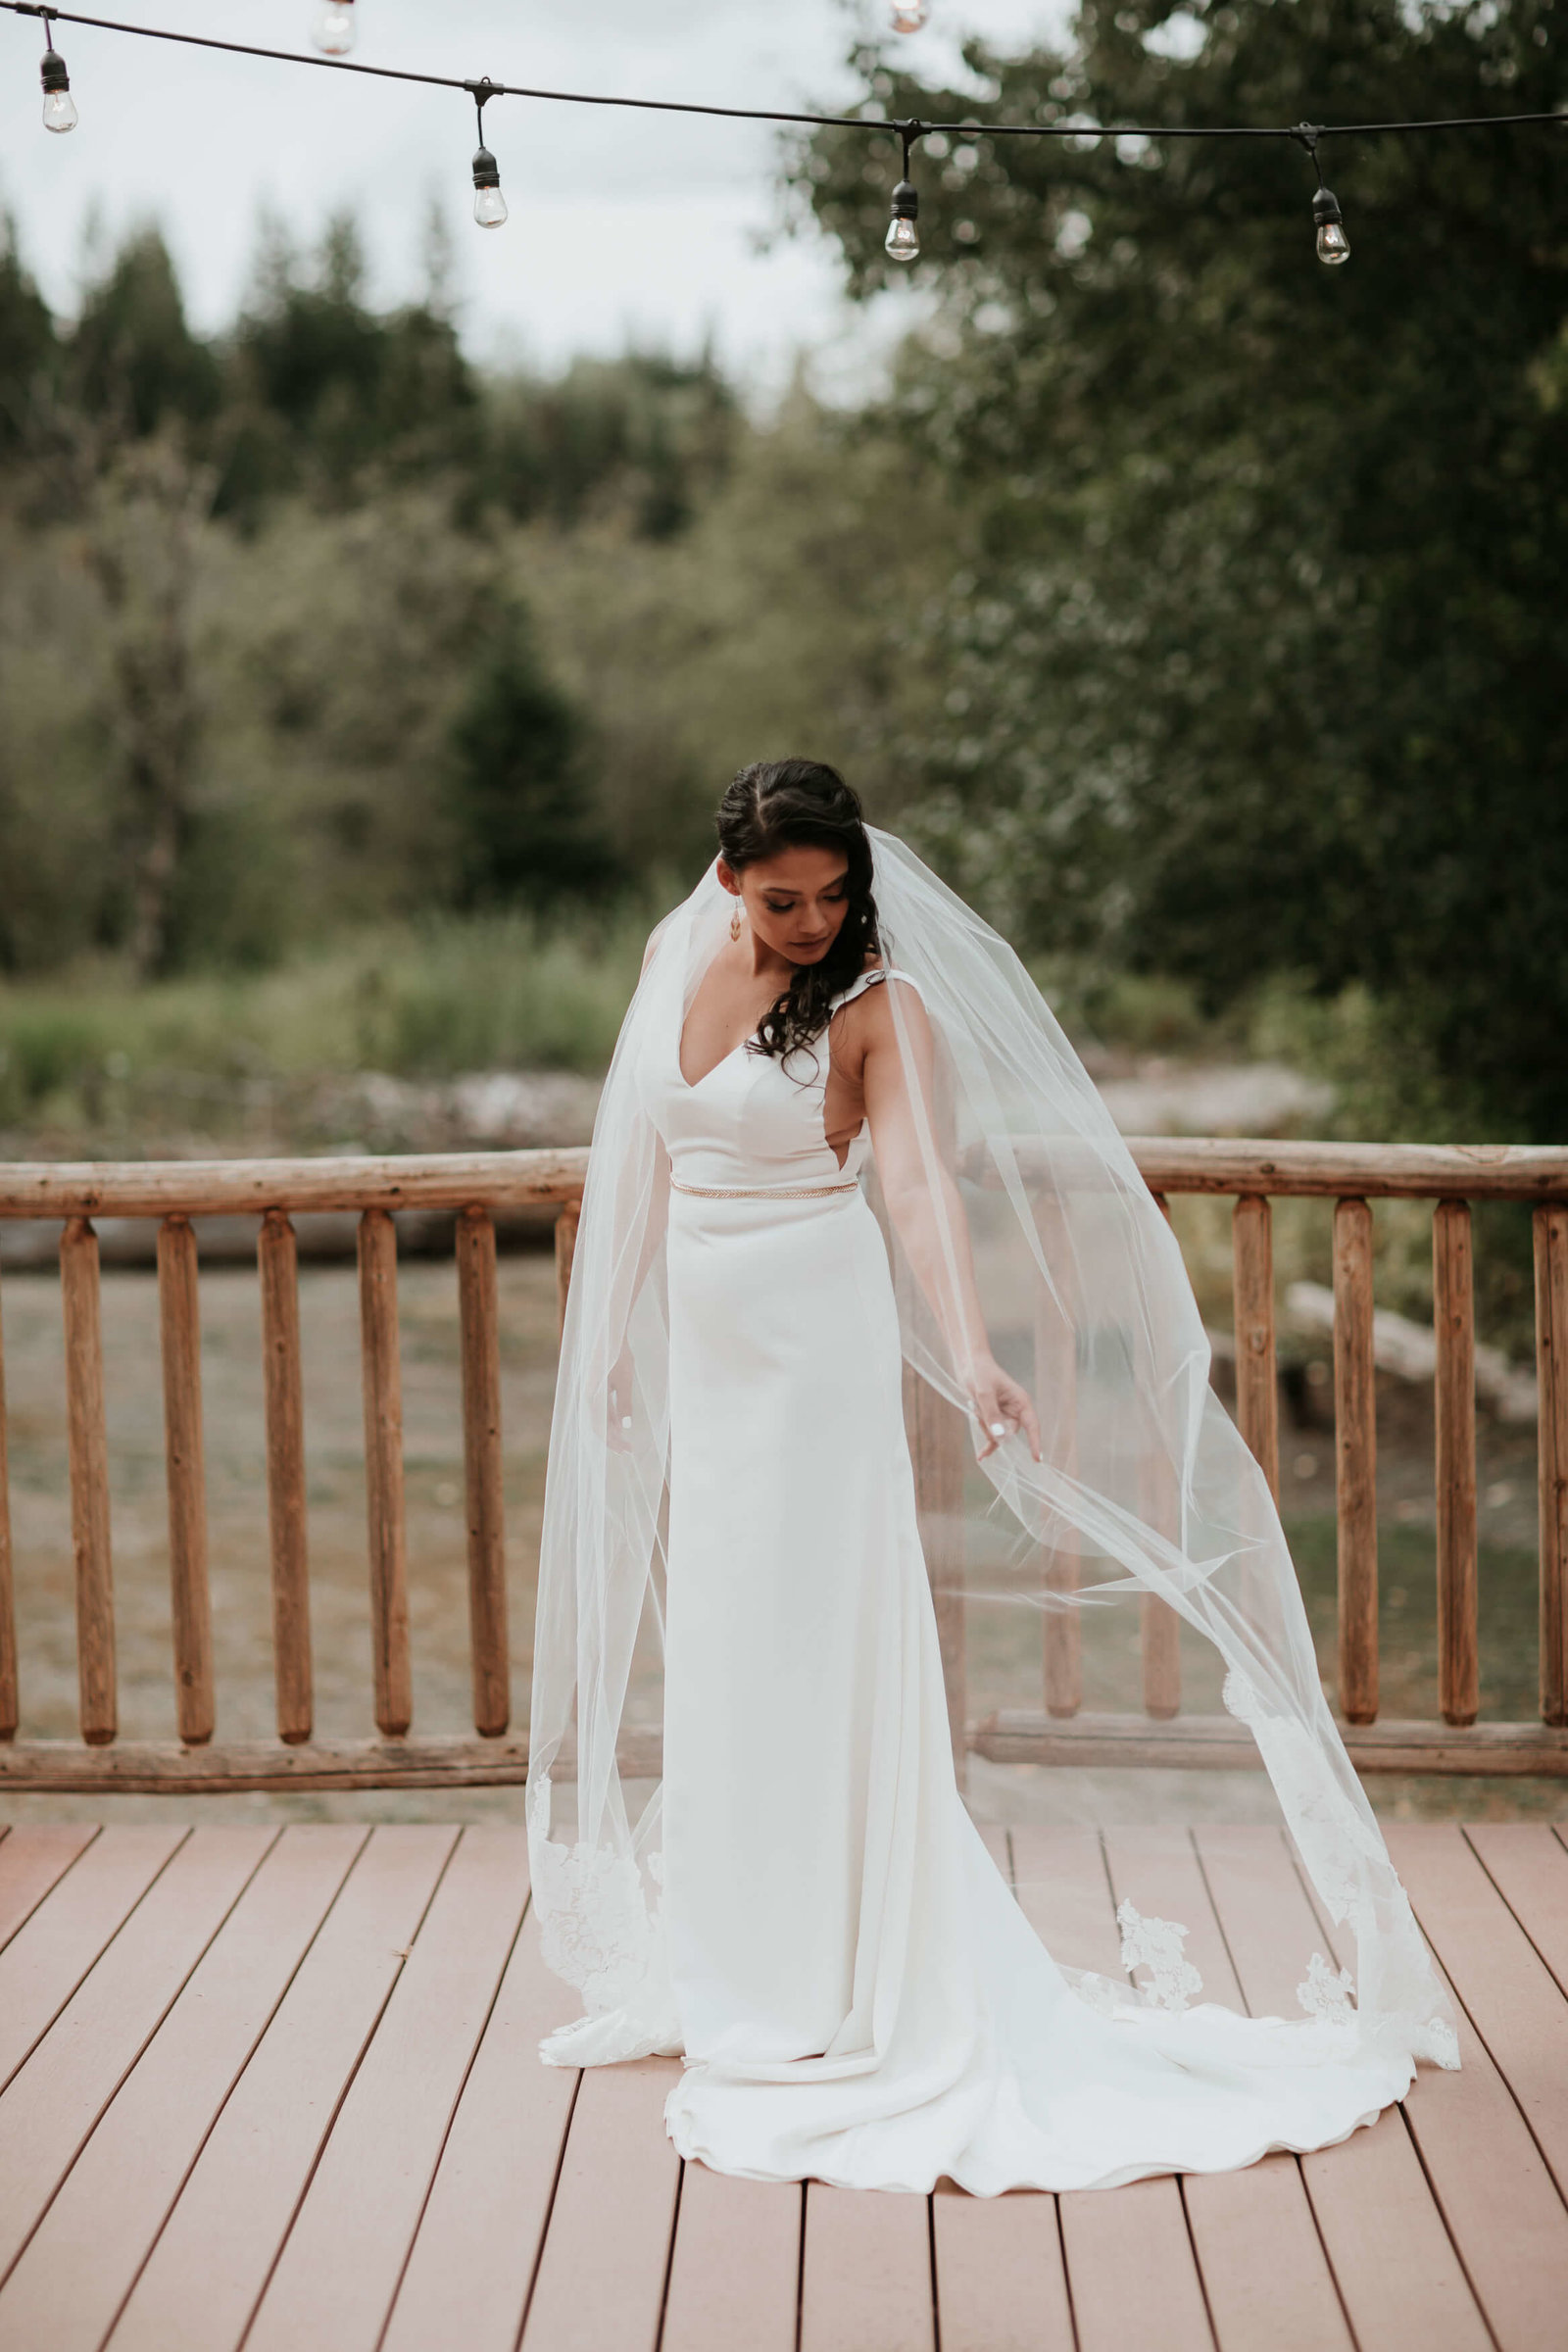 Hannah+Mike-Cabin-creek-lodge-wedding-Sept-2018-APW-H124